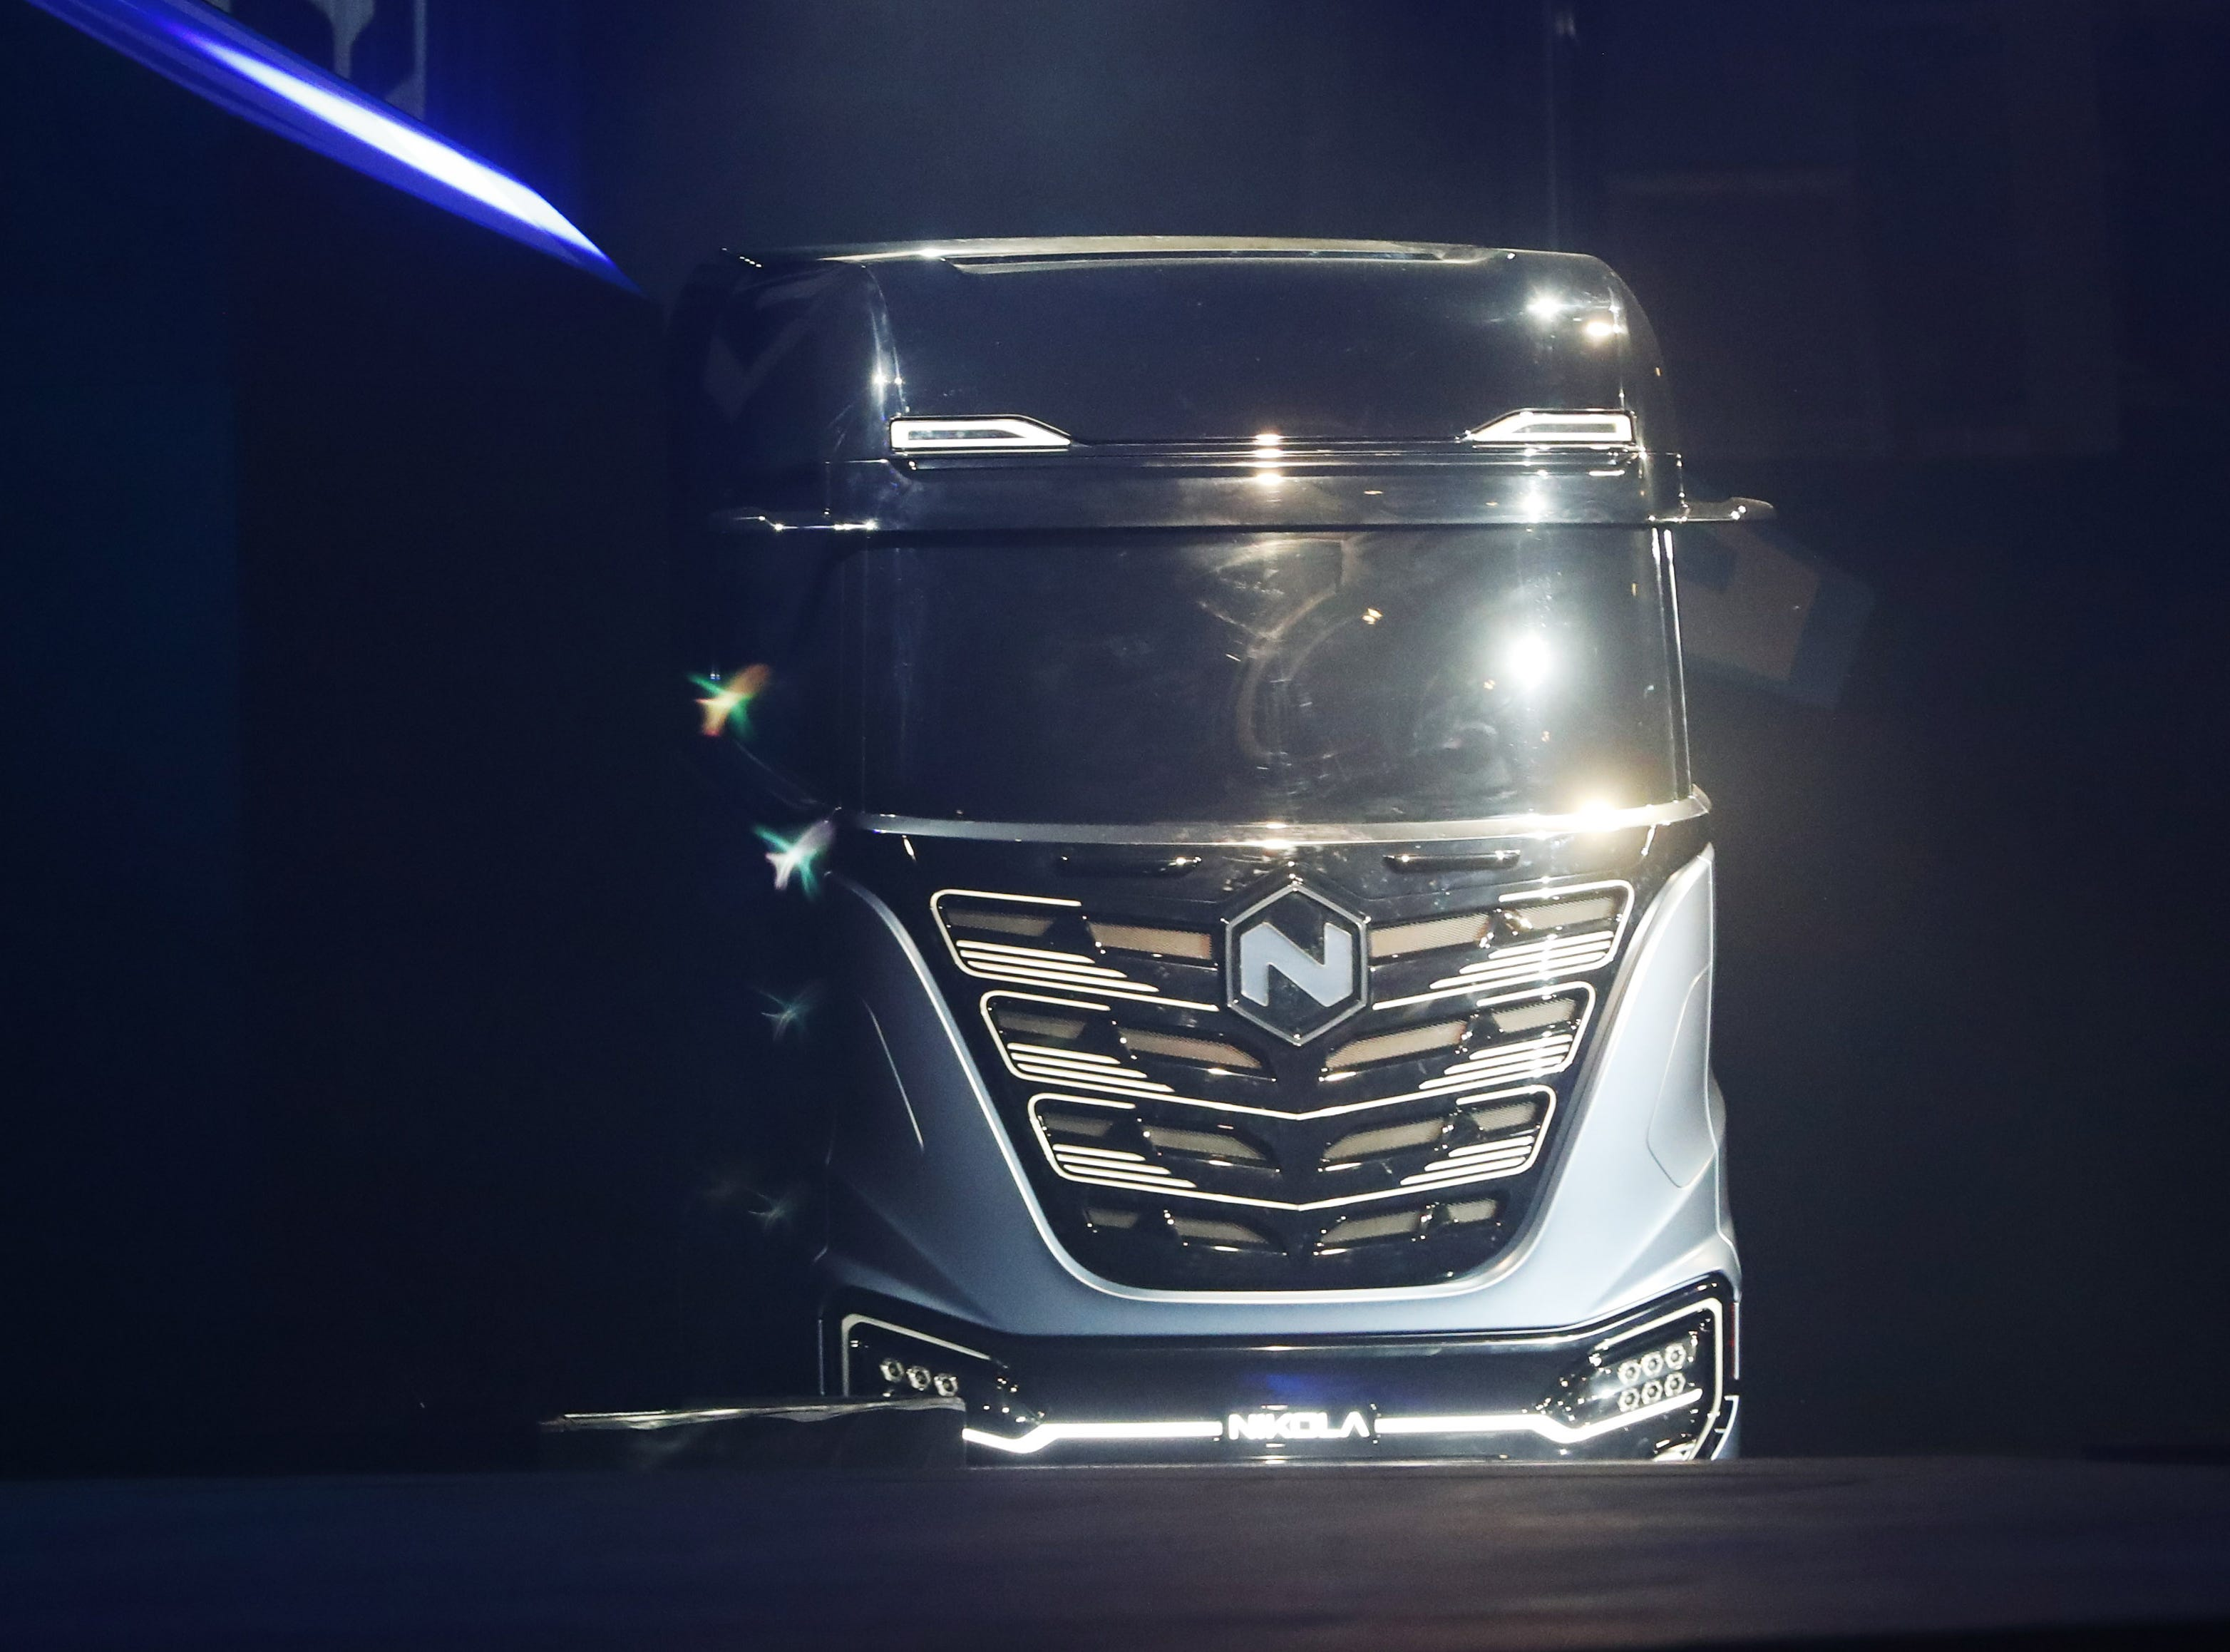 The Nikola Tre shown at Nikola World 2019 at Westworld in Scottsdale, Ariz. April 16, 2019.